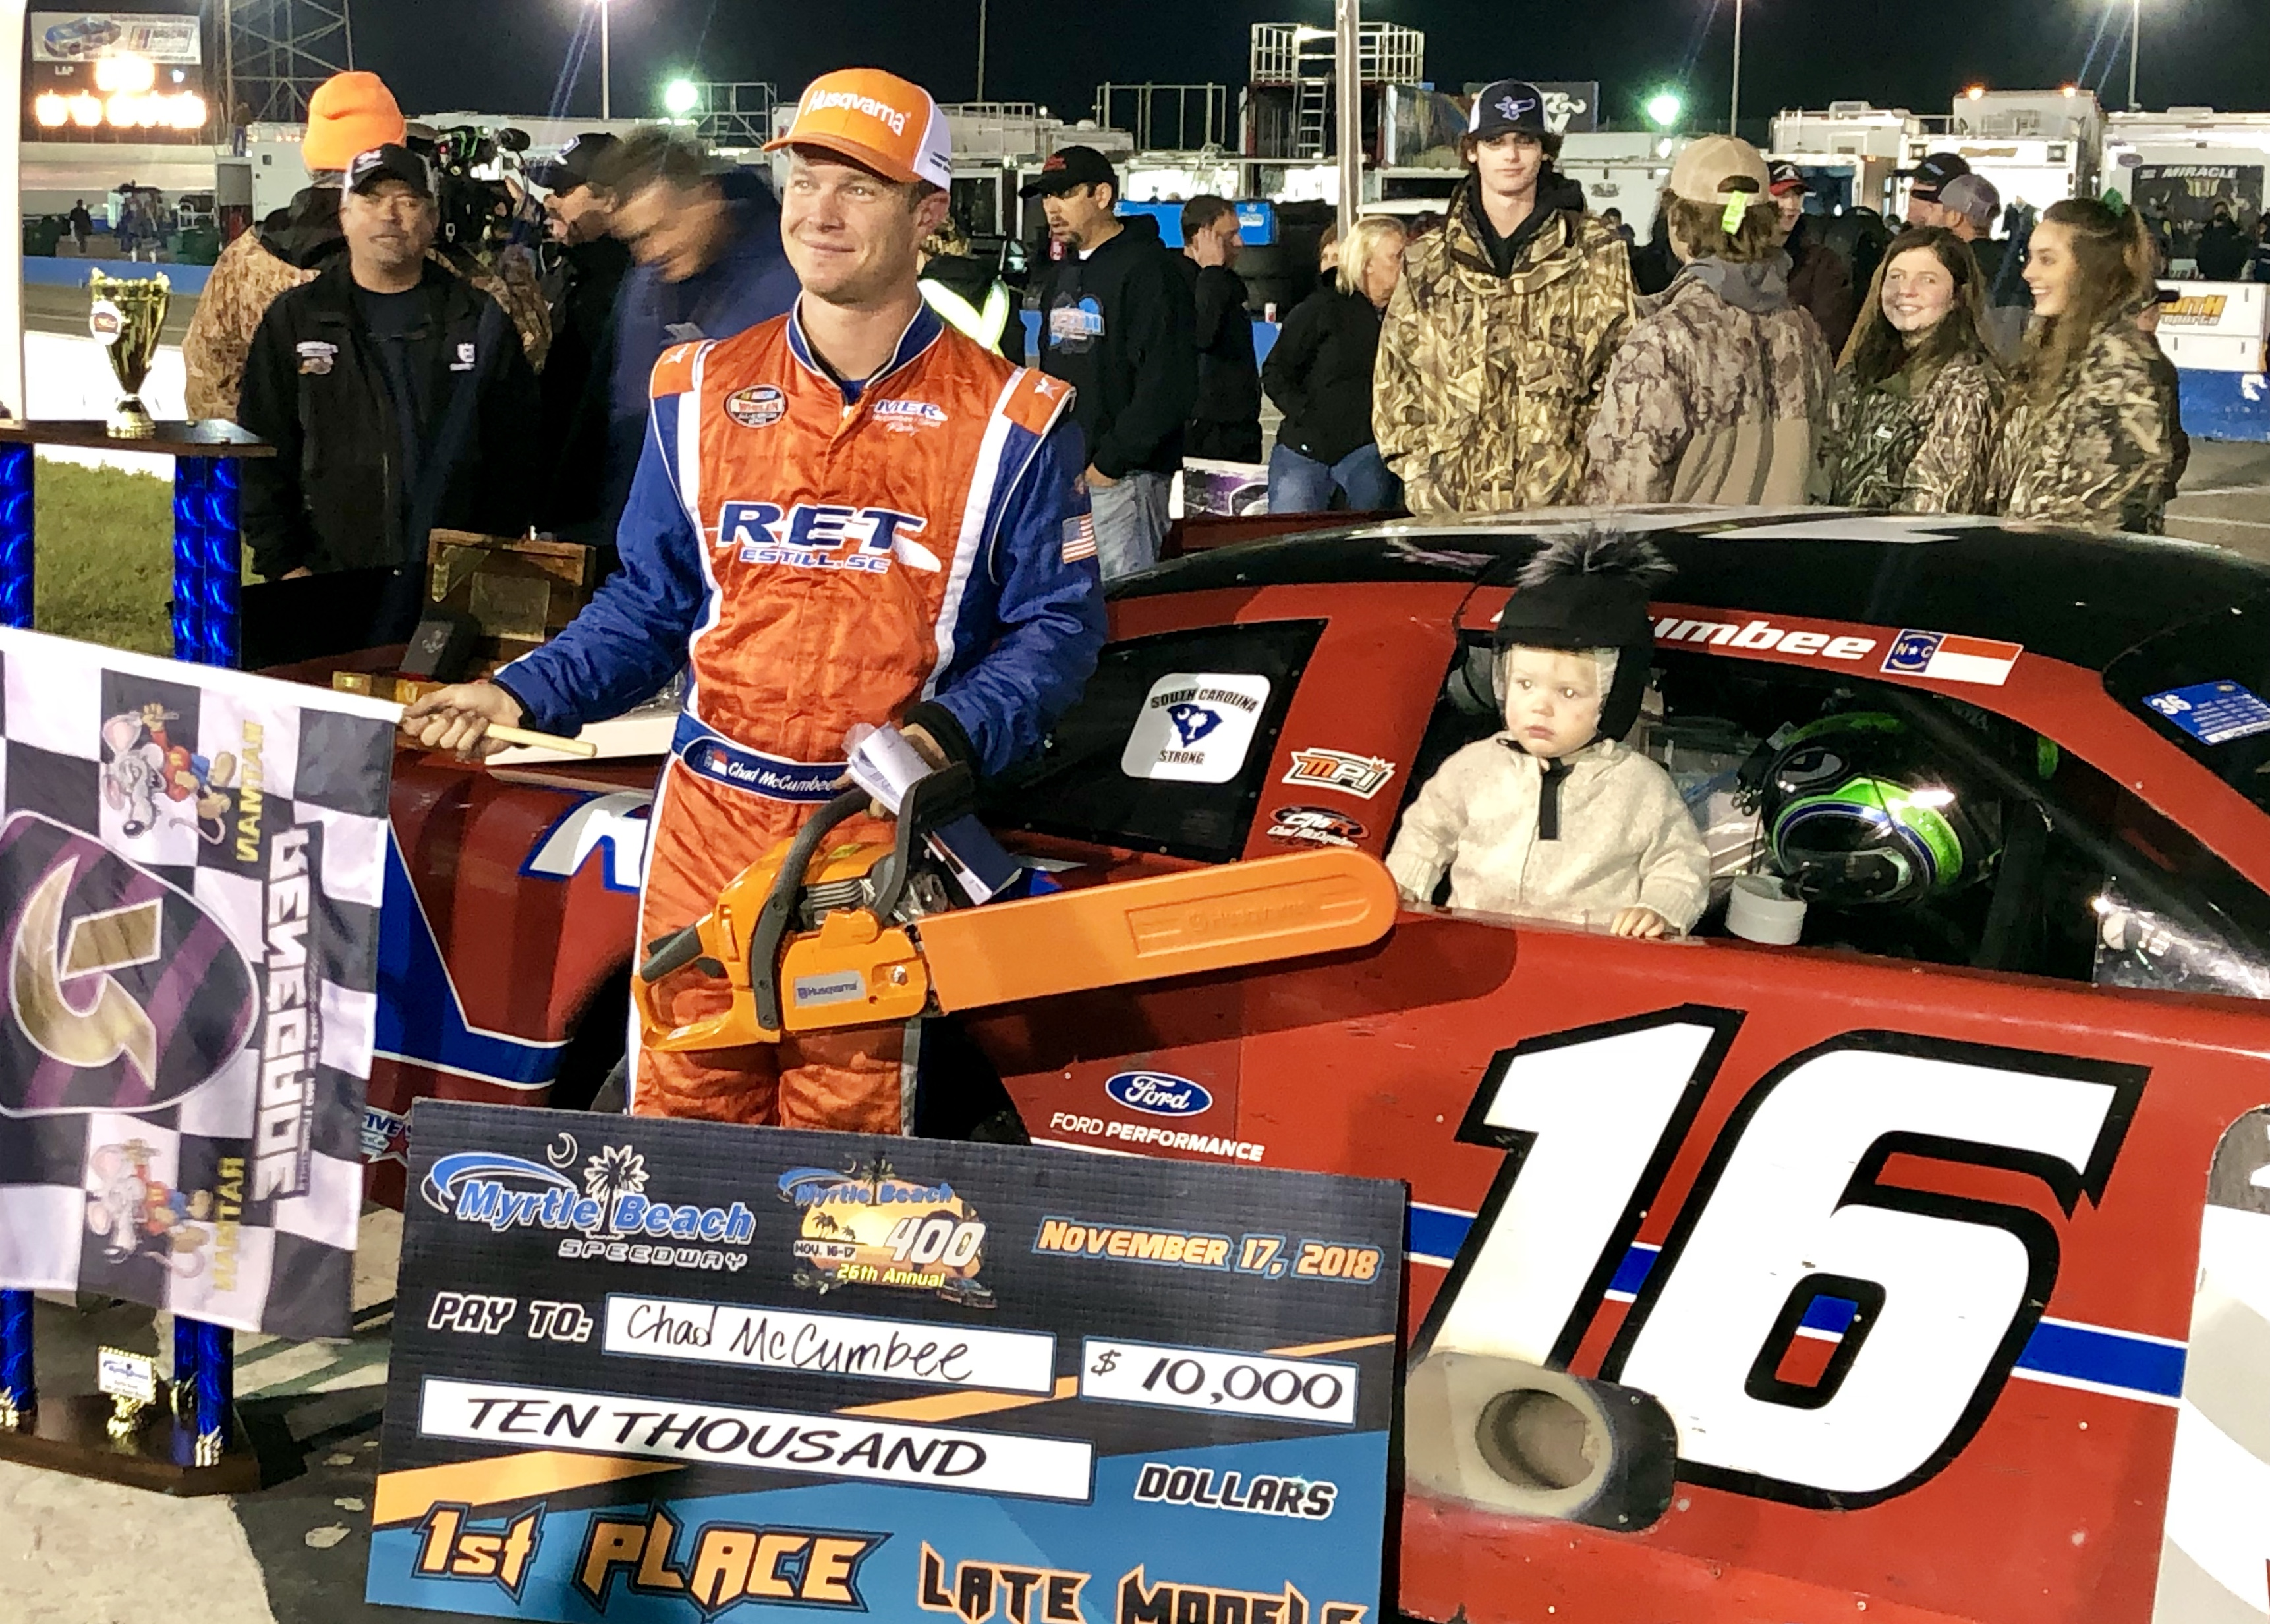 Chad McCumbee's maiden victory in the prestigious Myrtle Beach 400 on Saturday night was anything but uneventful.